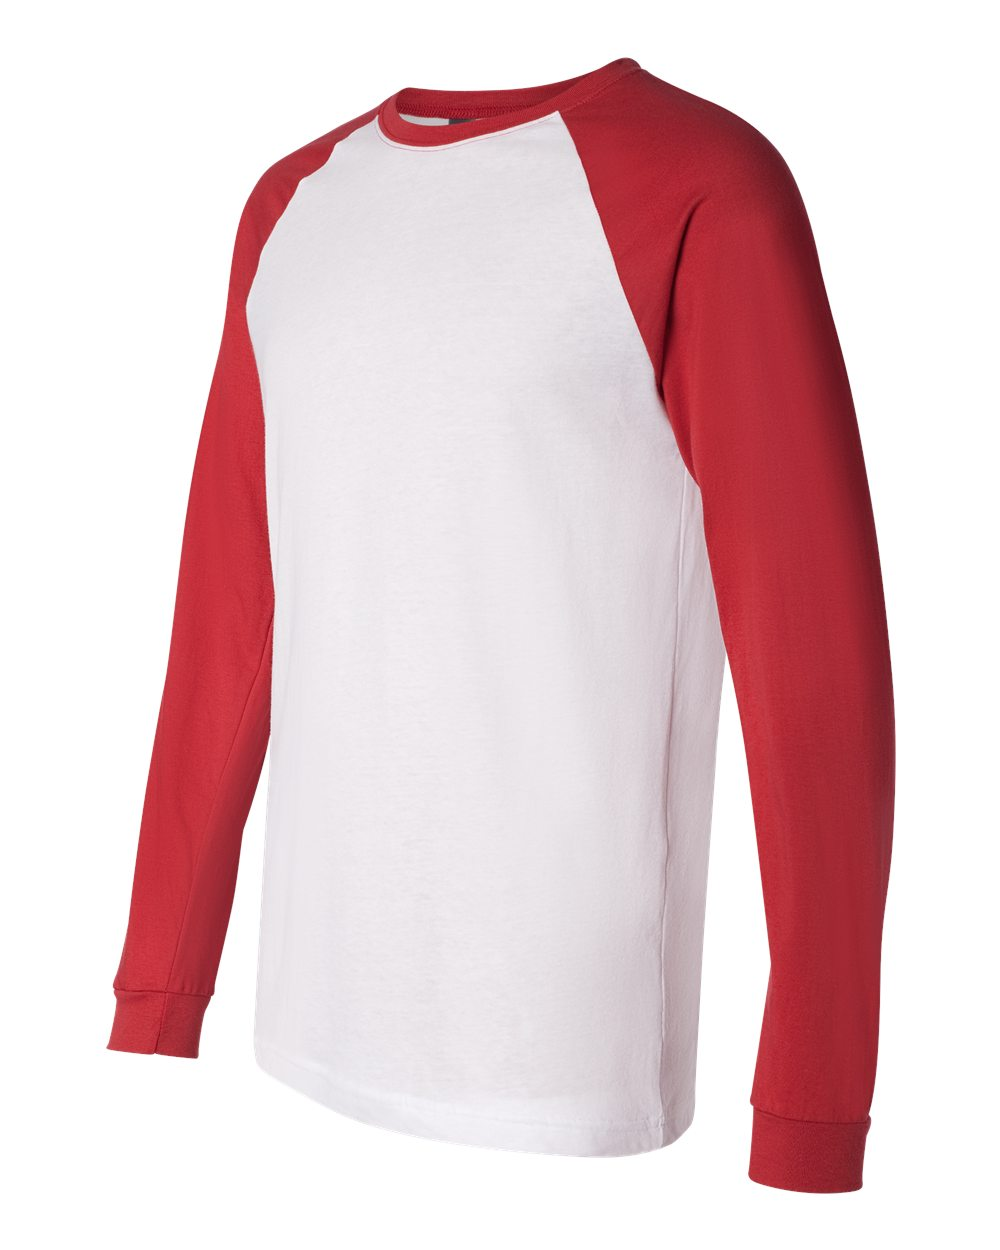 Bella Canvas 3000 Long Sleeve Jersey Baseball Tee